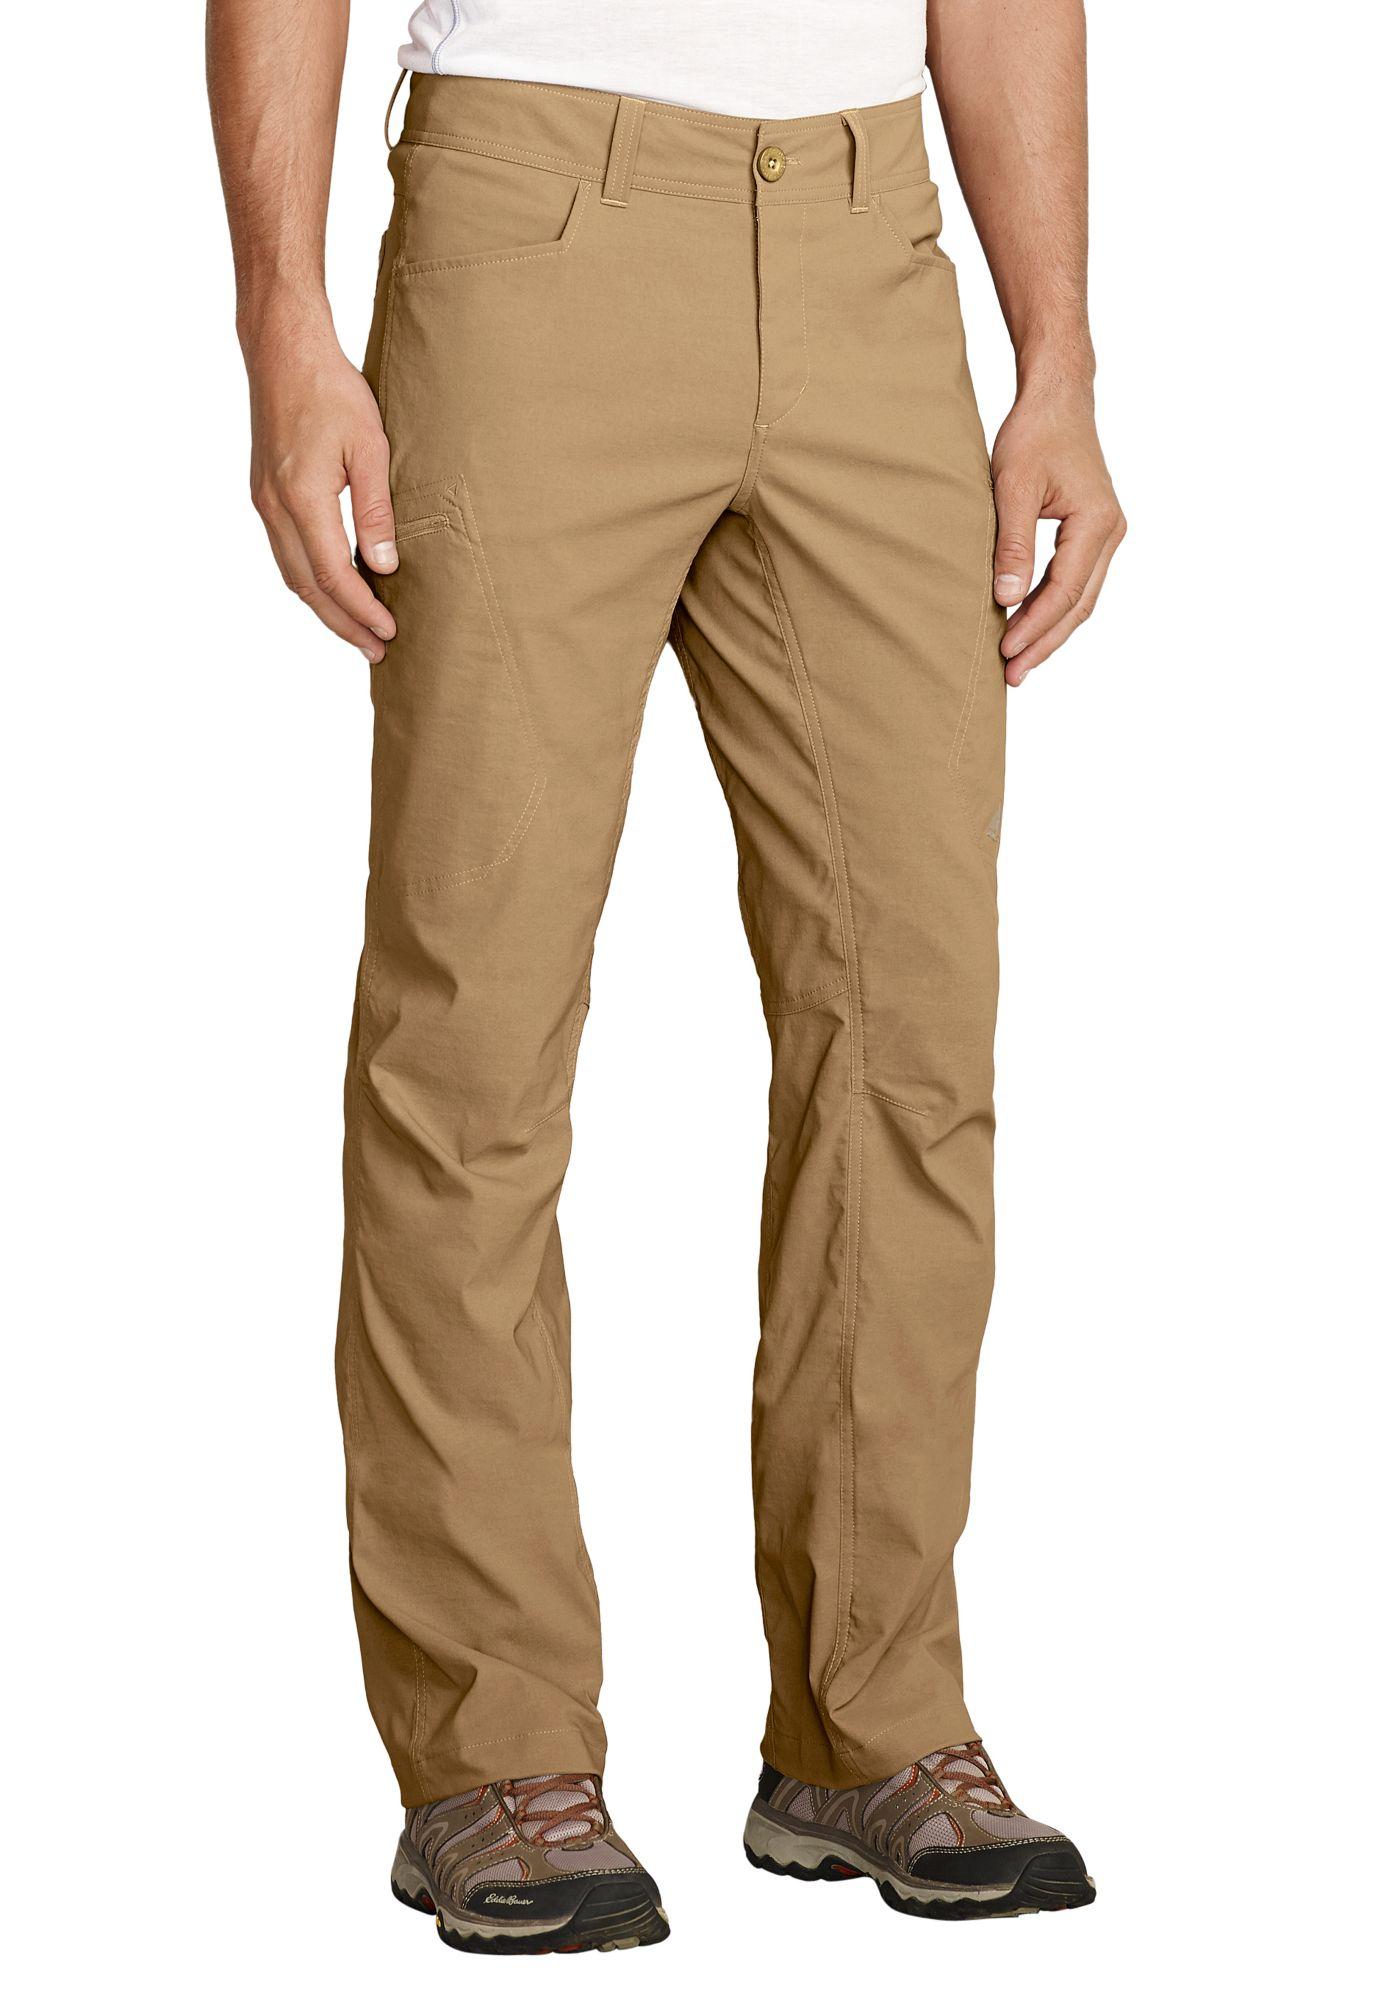 best hiking pants for men - Eddie Bauer